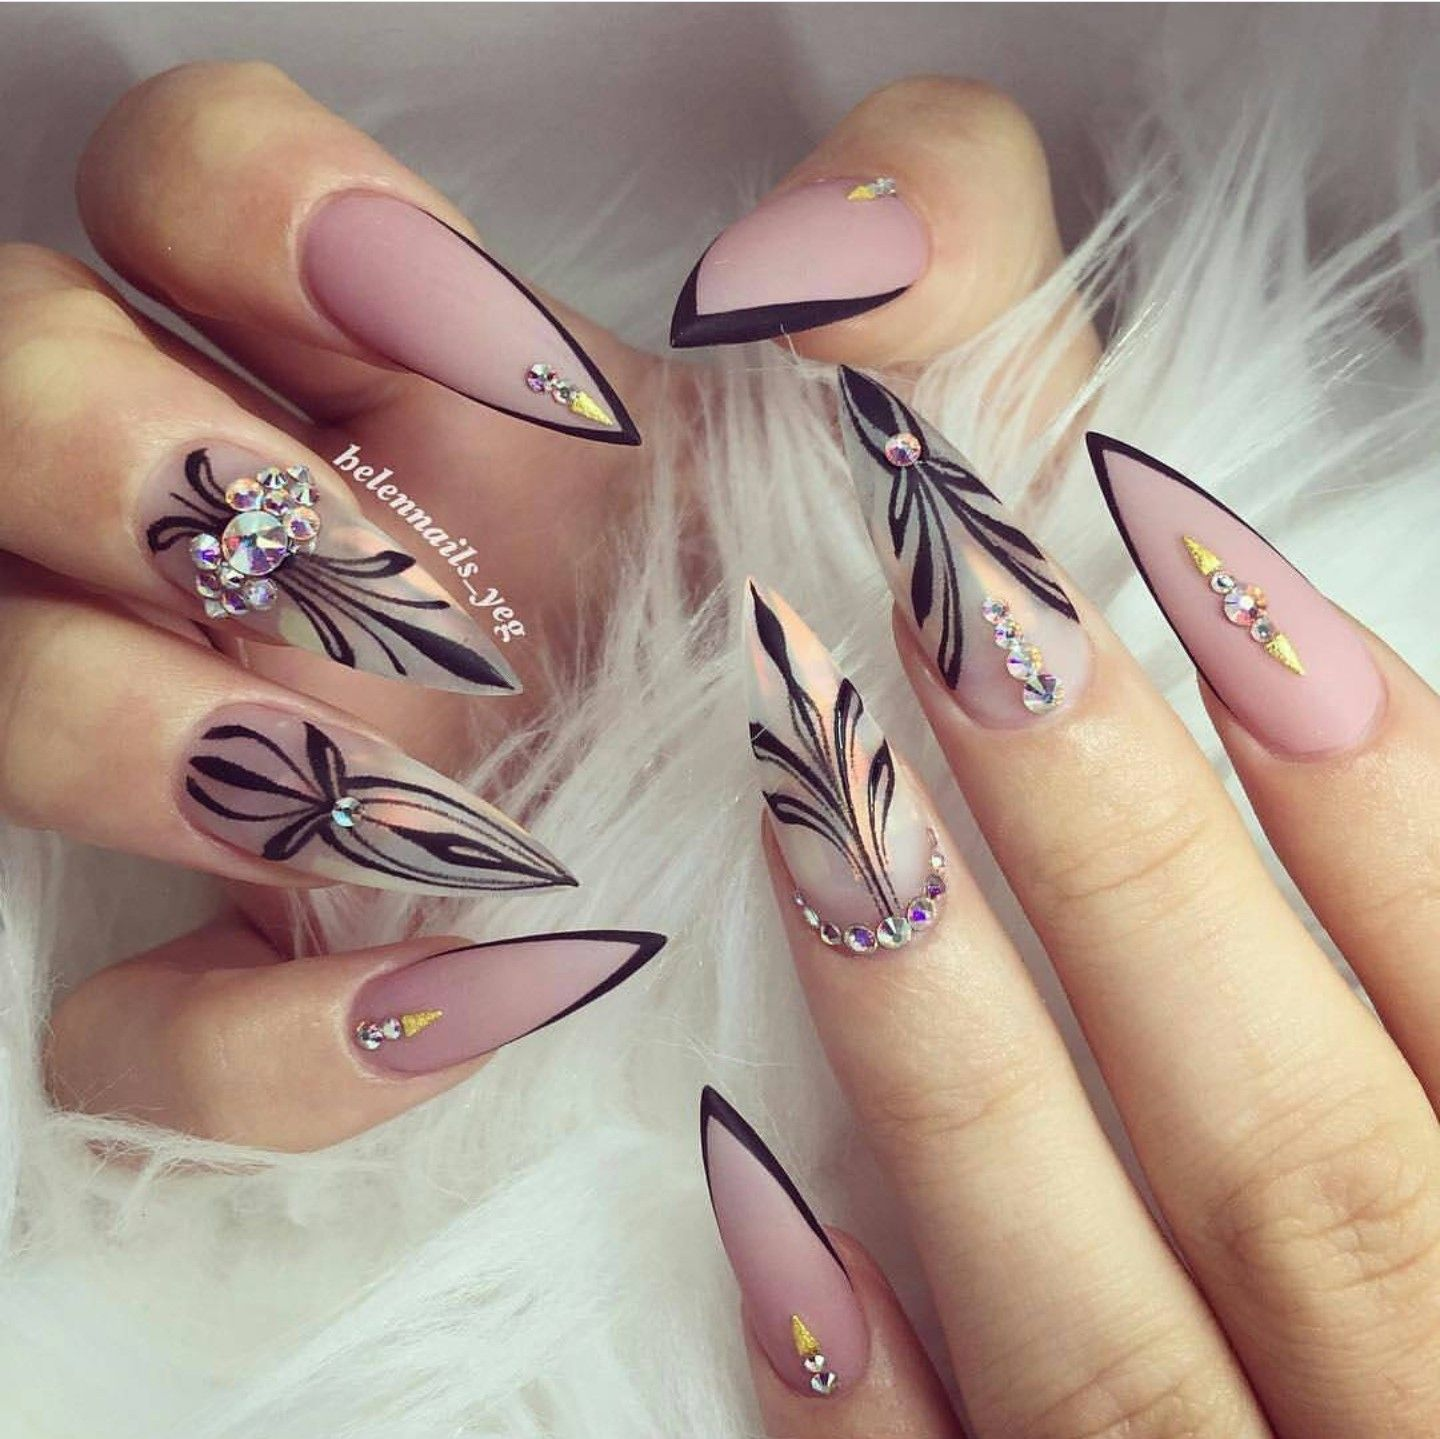 Pinterest @nattat74 | Nail art | Pinterest | Manicure, Nail nail and ...